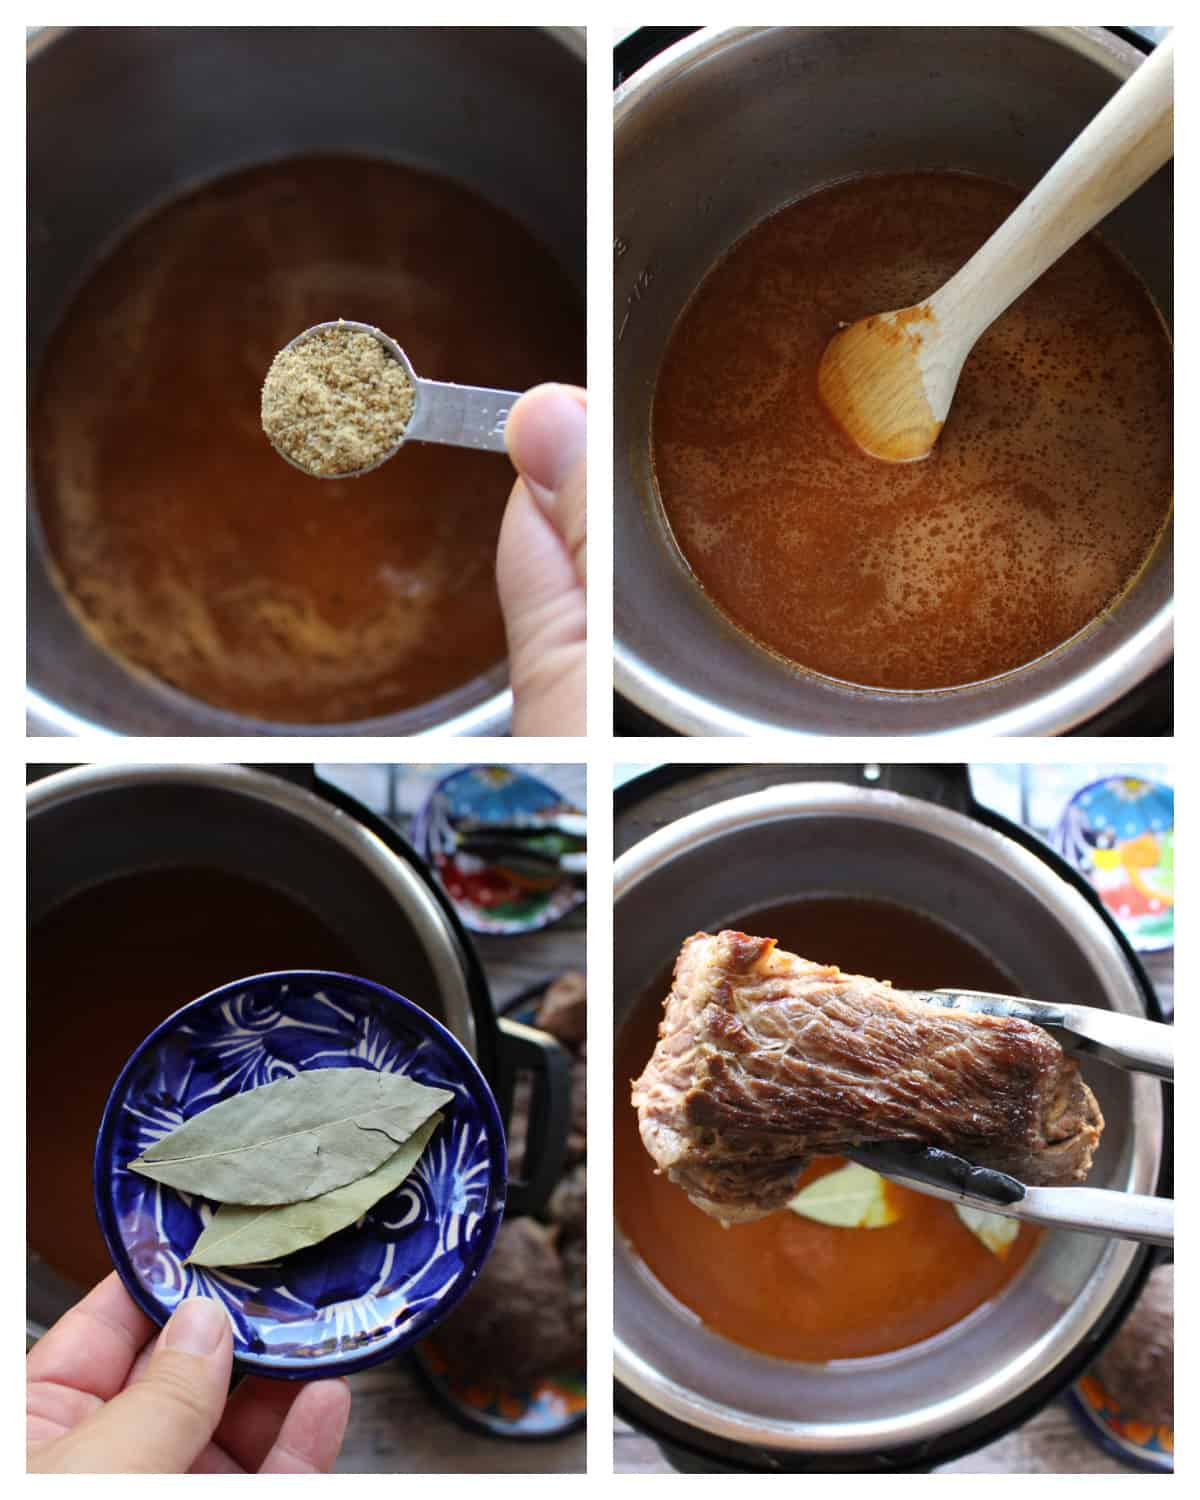 A collage showing the addition of more ingredients into the instant pot.